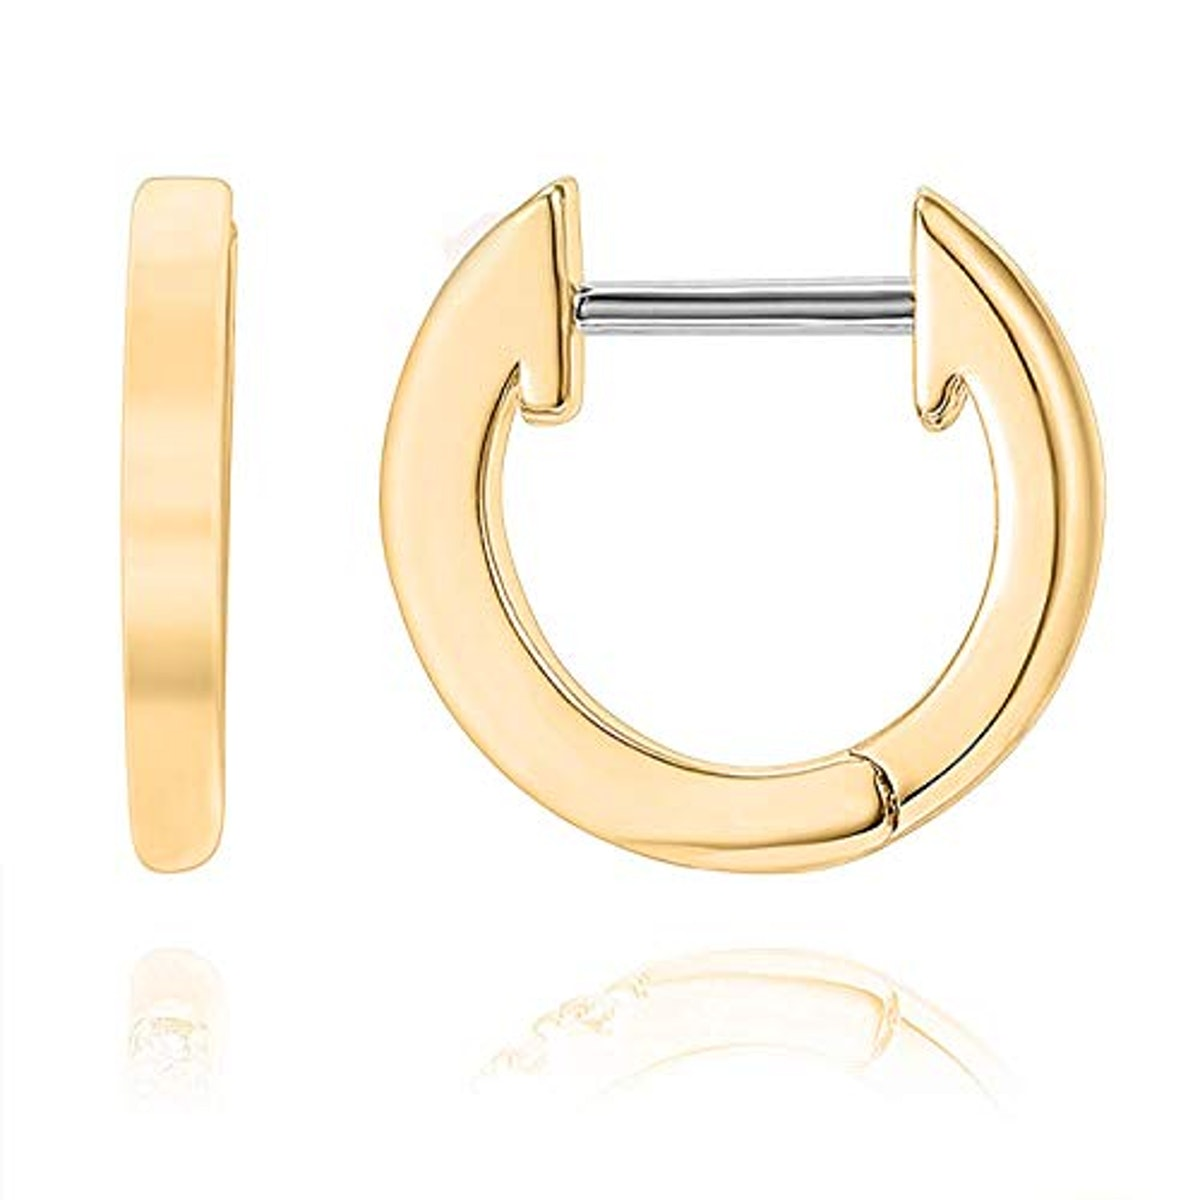 PAVOI 14K Yellow Gold Plated Cuff Earrings Huggie Stud